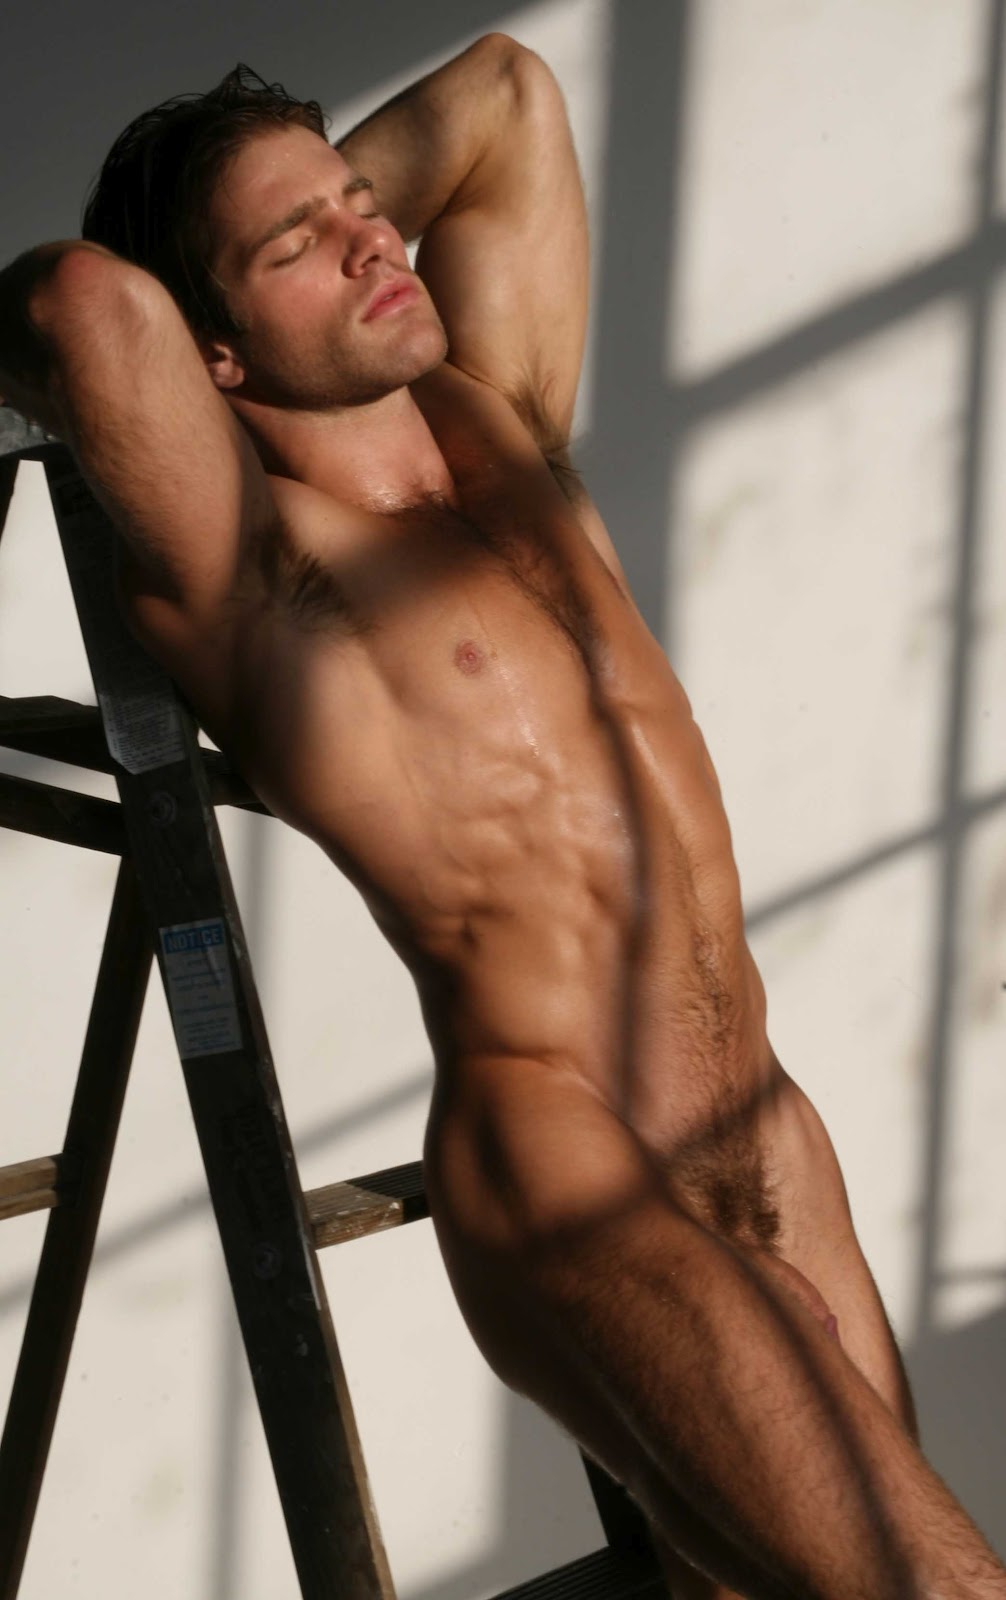 Hot uk male model third load